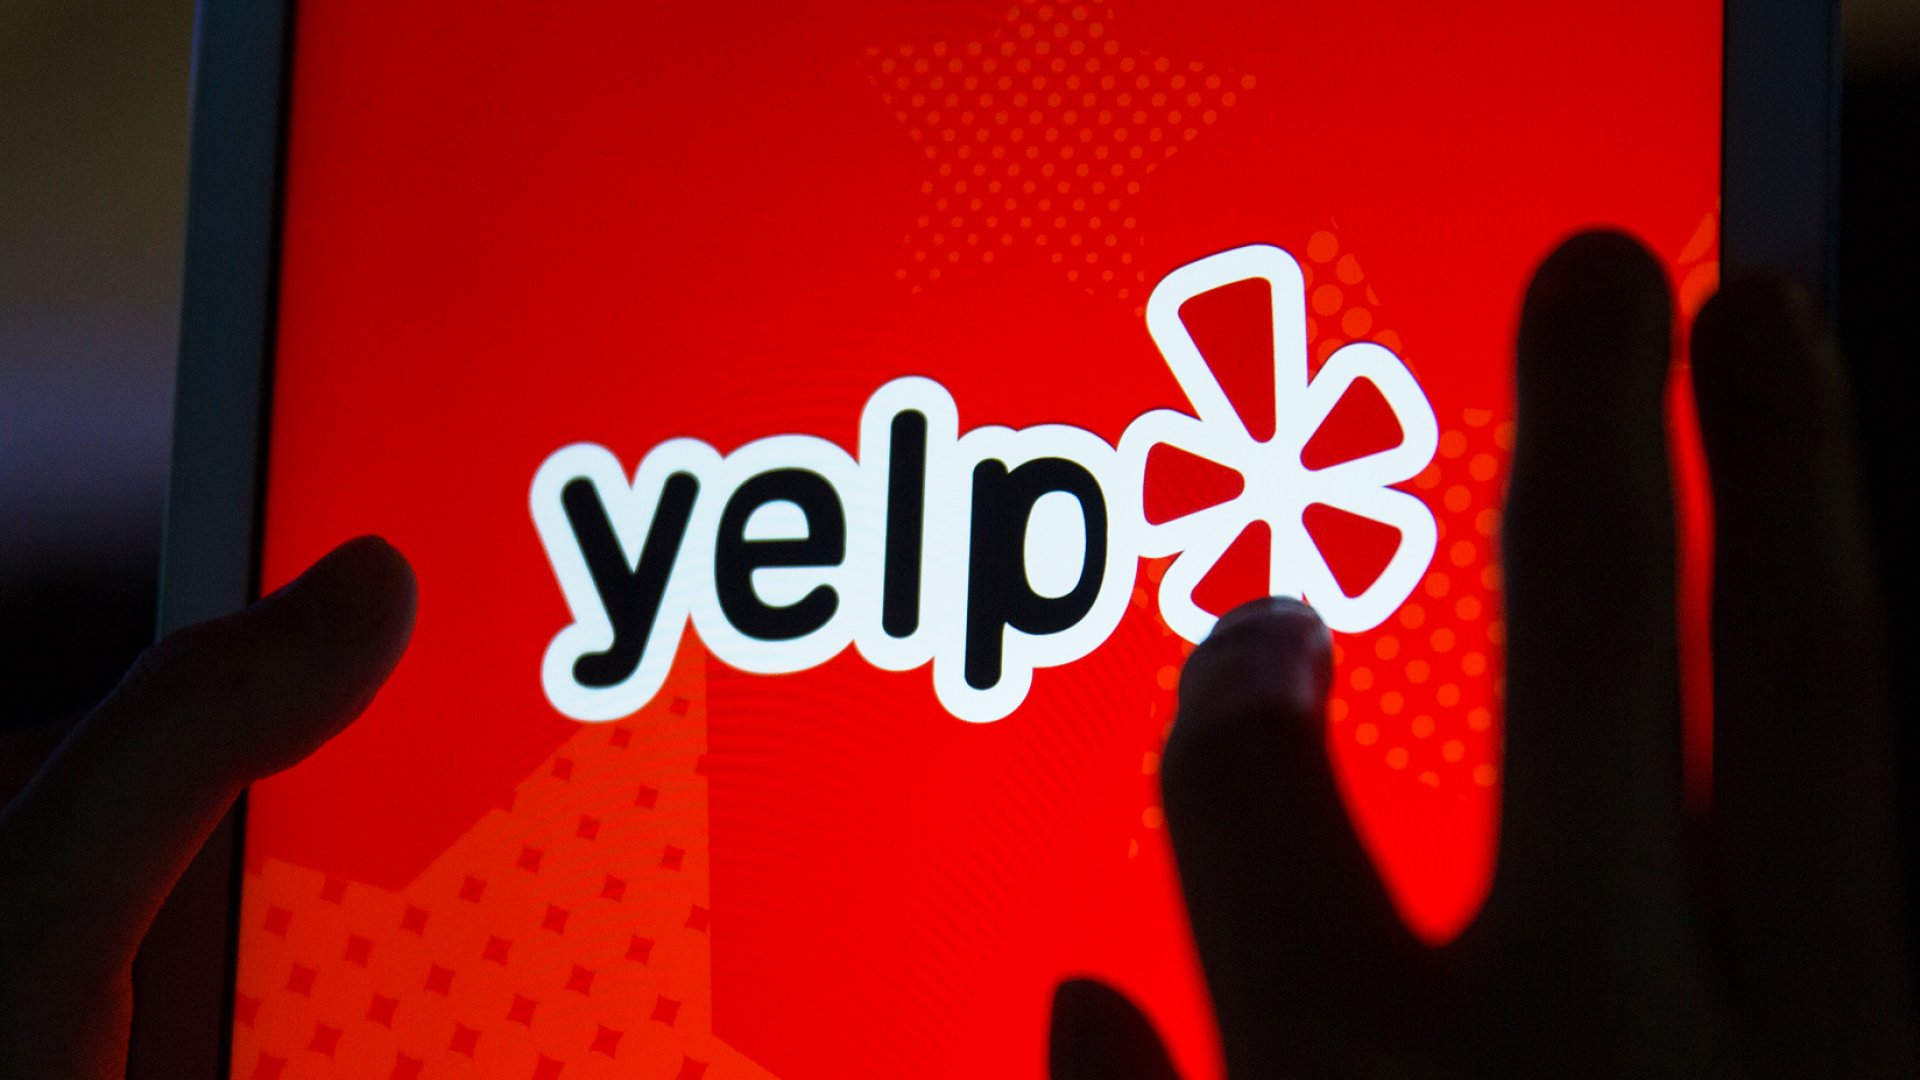 Want to Support Women-Owned Businesses? Yelp Will Identify Them for You